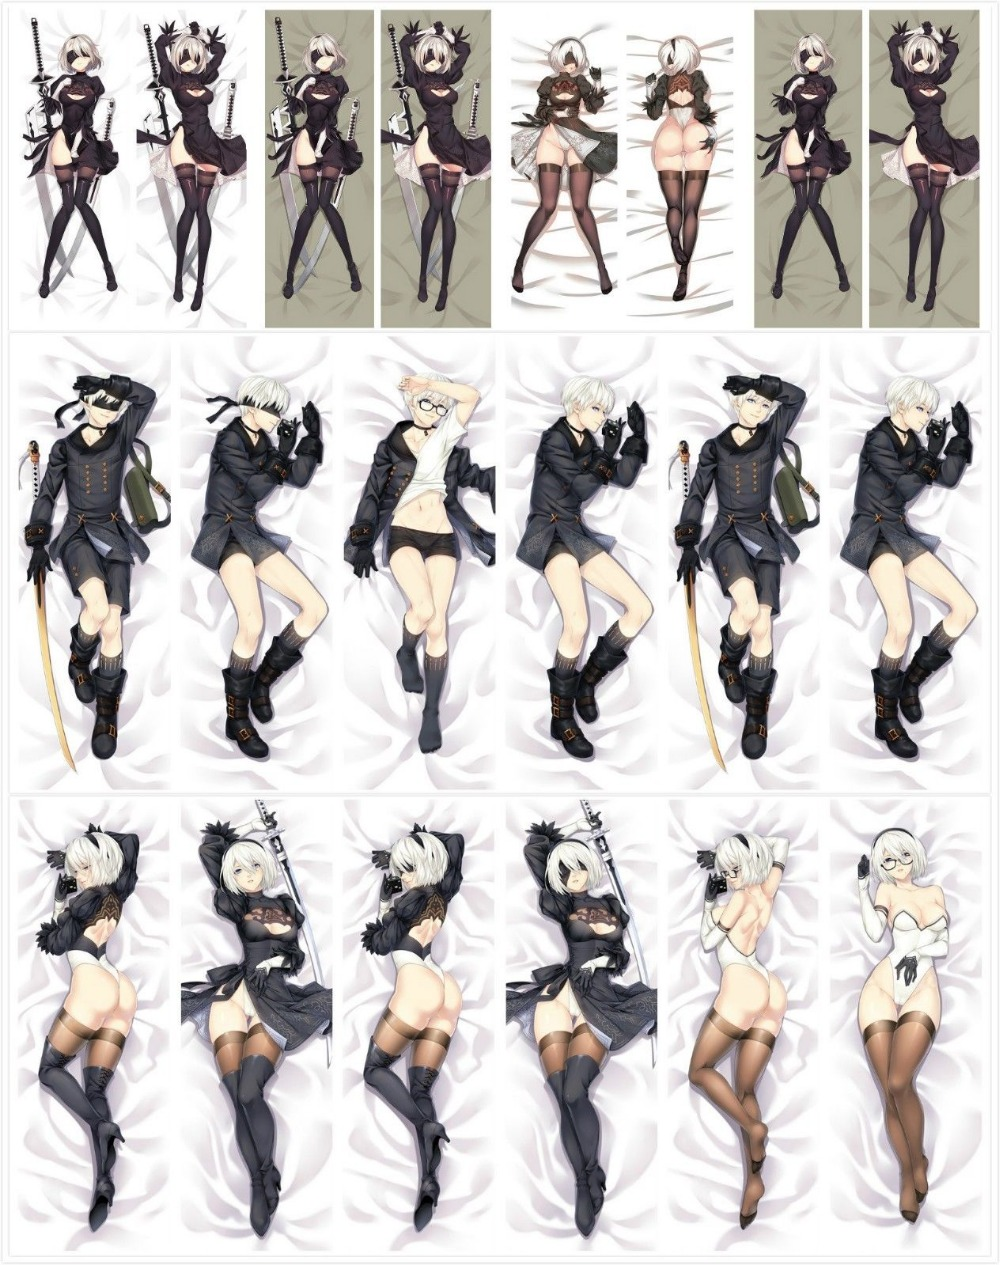 New Hot Game Dakimakura NieR:Automata YoRHa 2B Hugging Body Pillow Cover Case Bedding Covers-in Pillow Case from Home & Garden